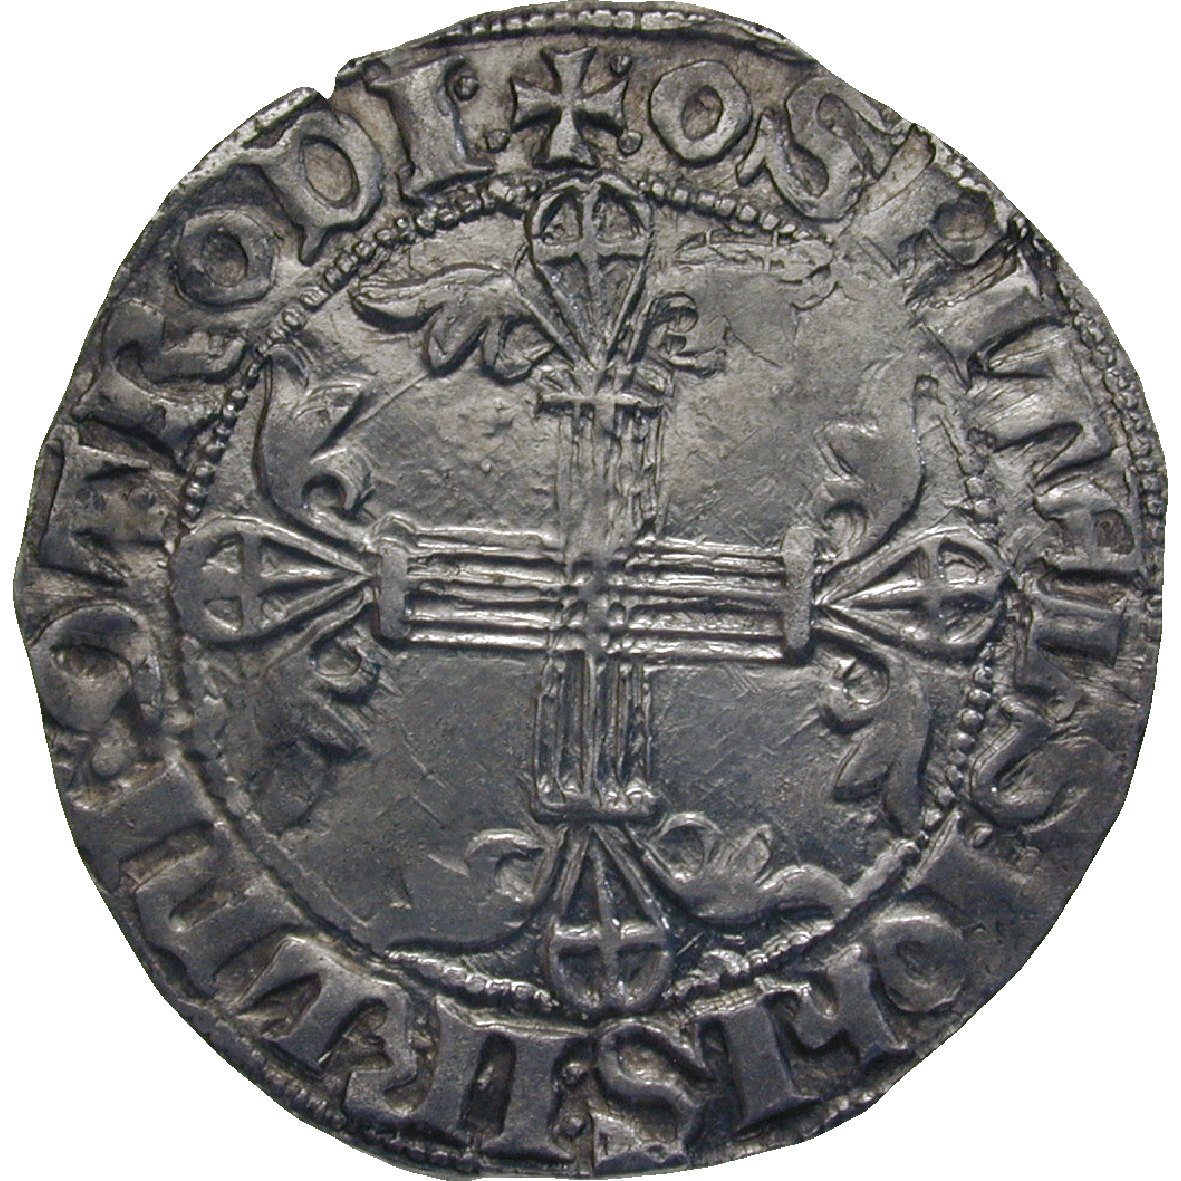 Rhodos under the Order of St John, Helion de Villeneuve, Gigliato (reverse)